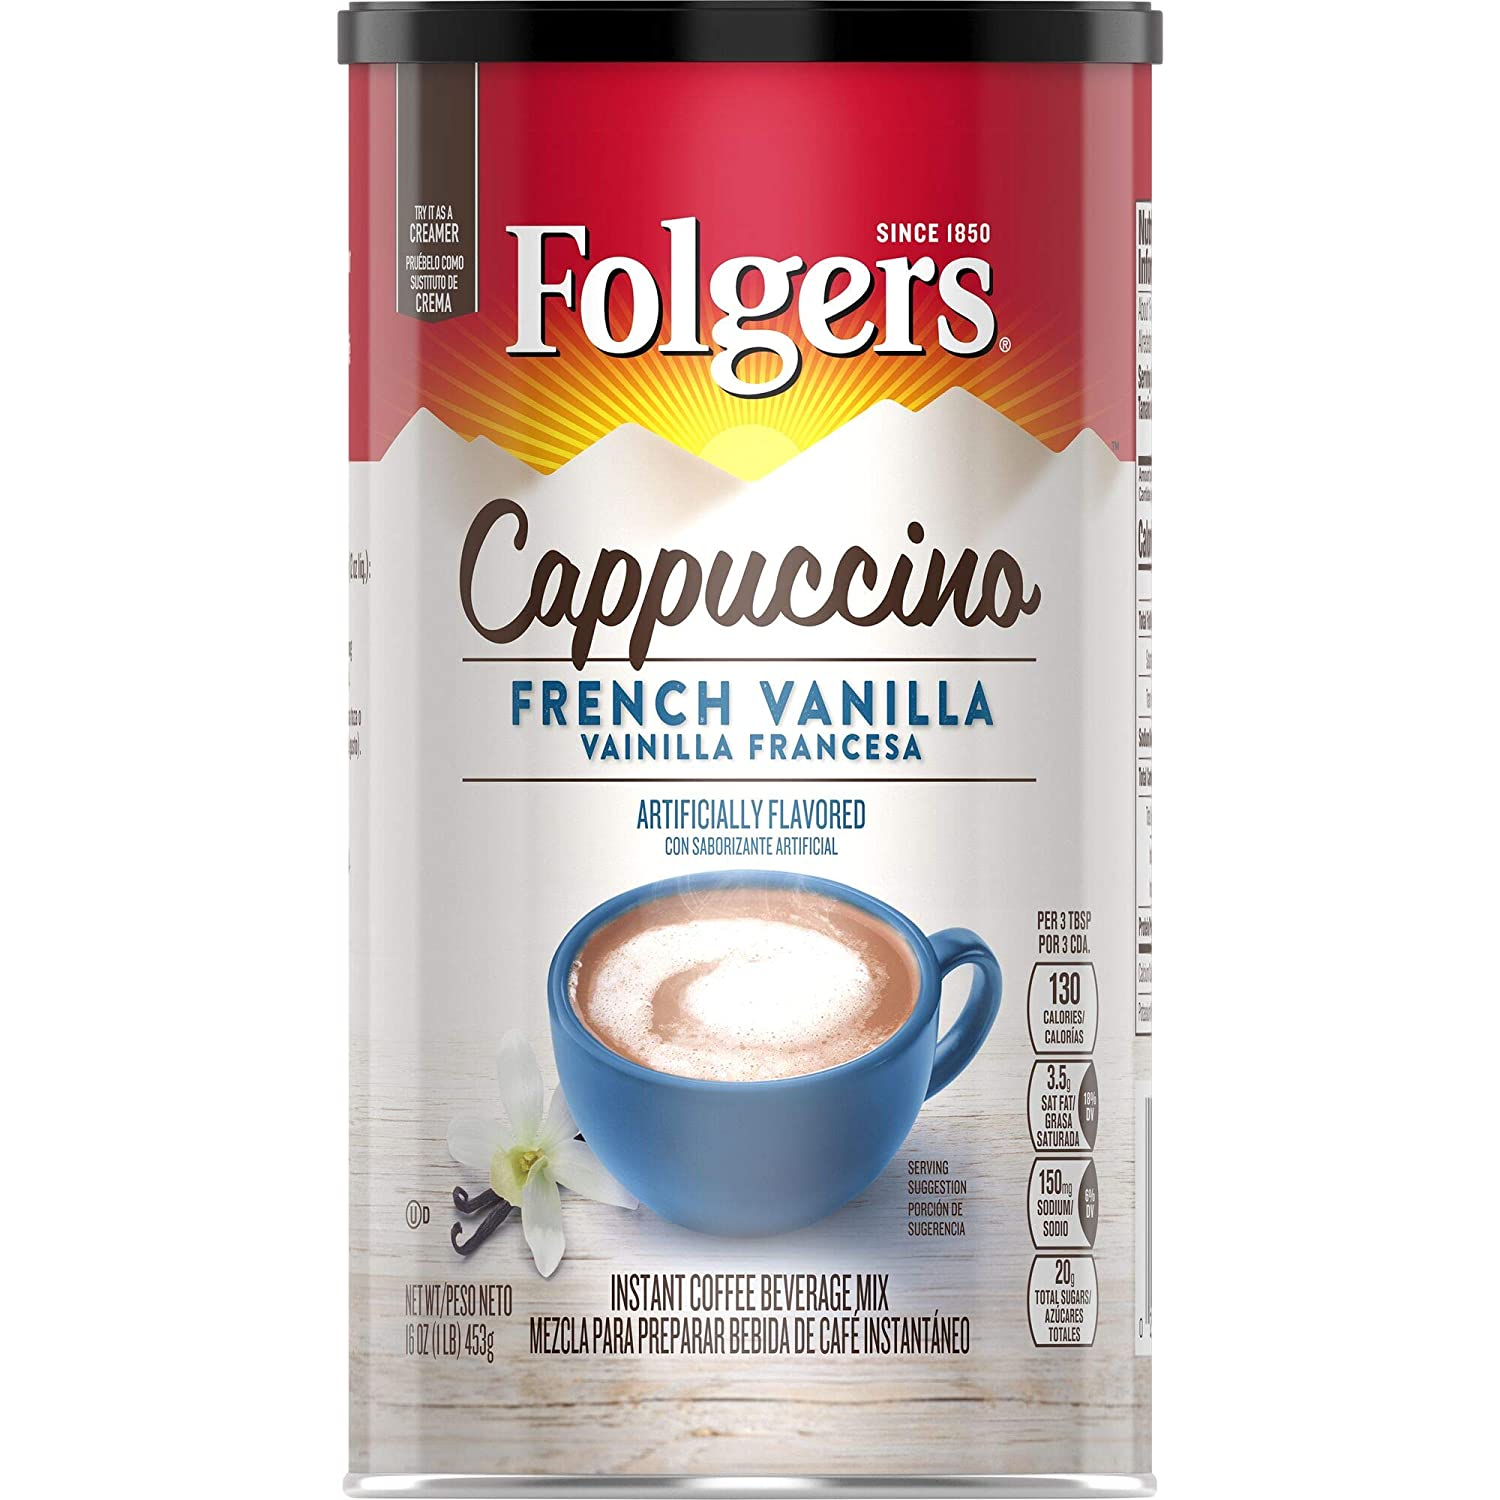 Folgers Cappuccino French Vanilla Instant Coffee Beverage Mix, 16 Ounces (Pack of 6)